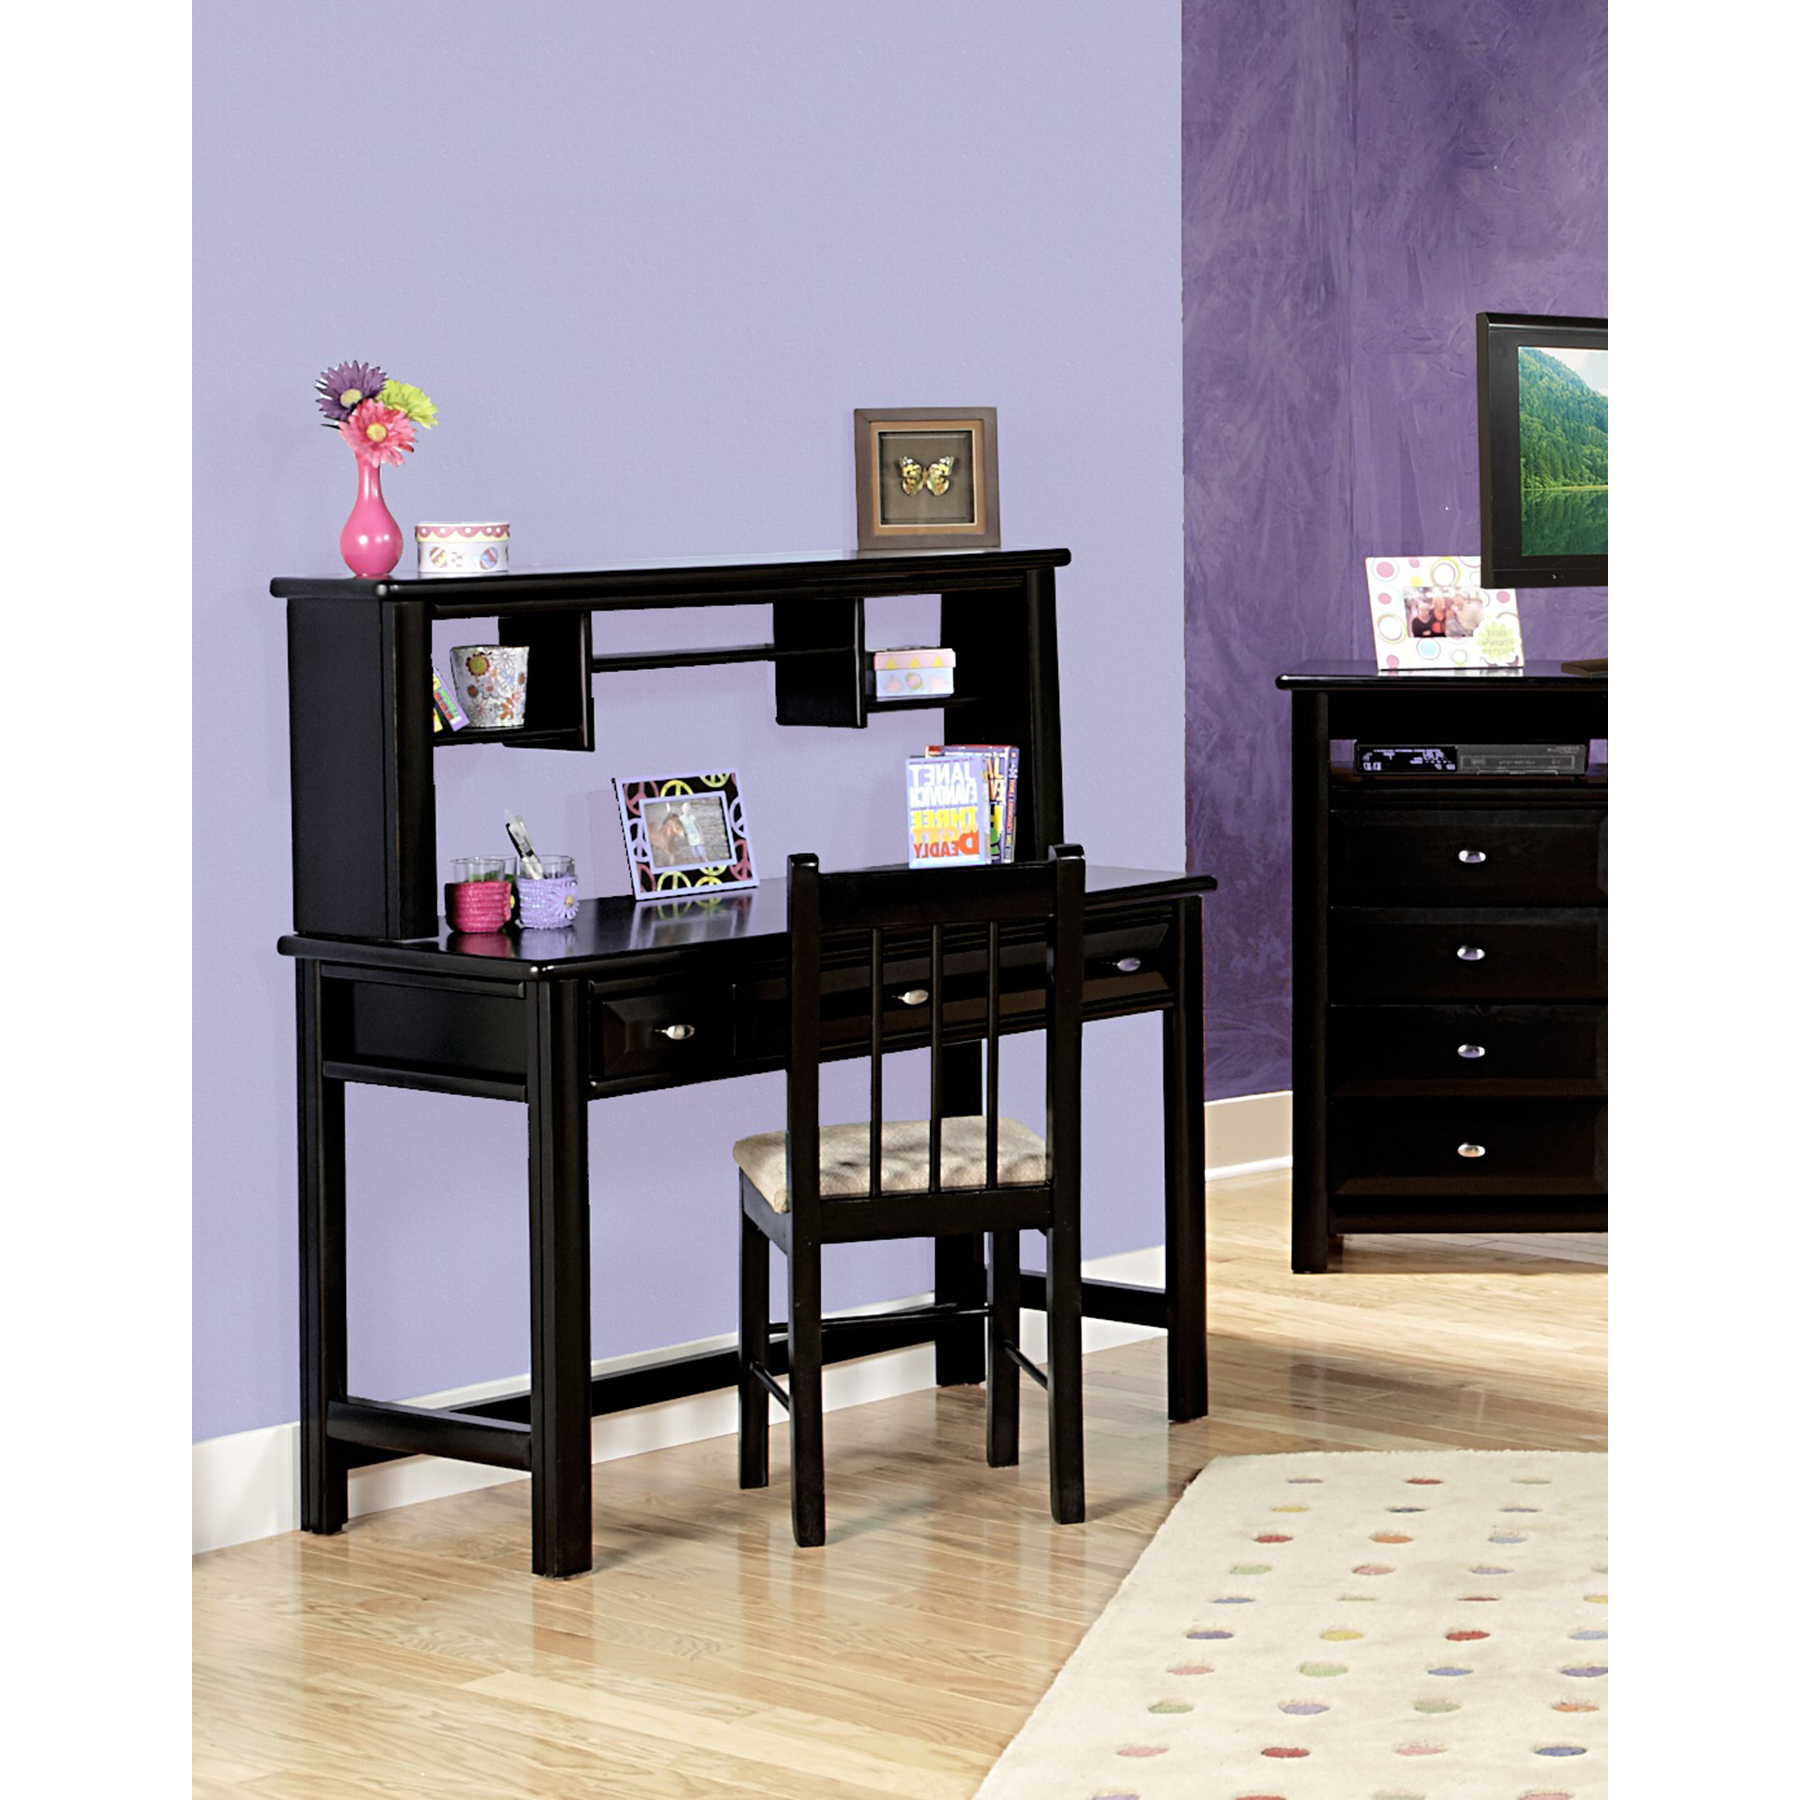 3-Drawer Student Desk - Oval Knobs, Black Cherry Finish